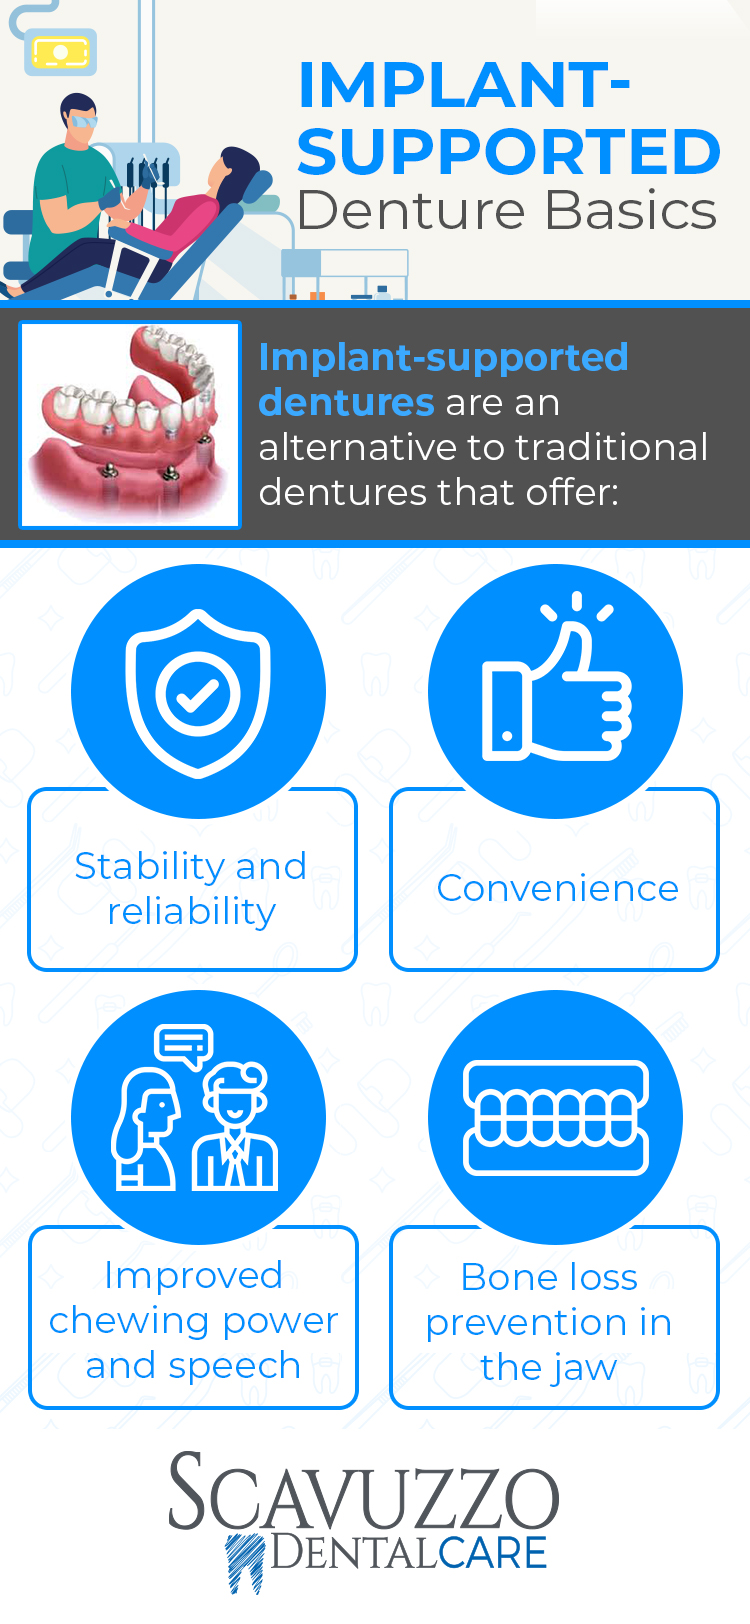 Implant-supported denture infographic